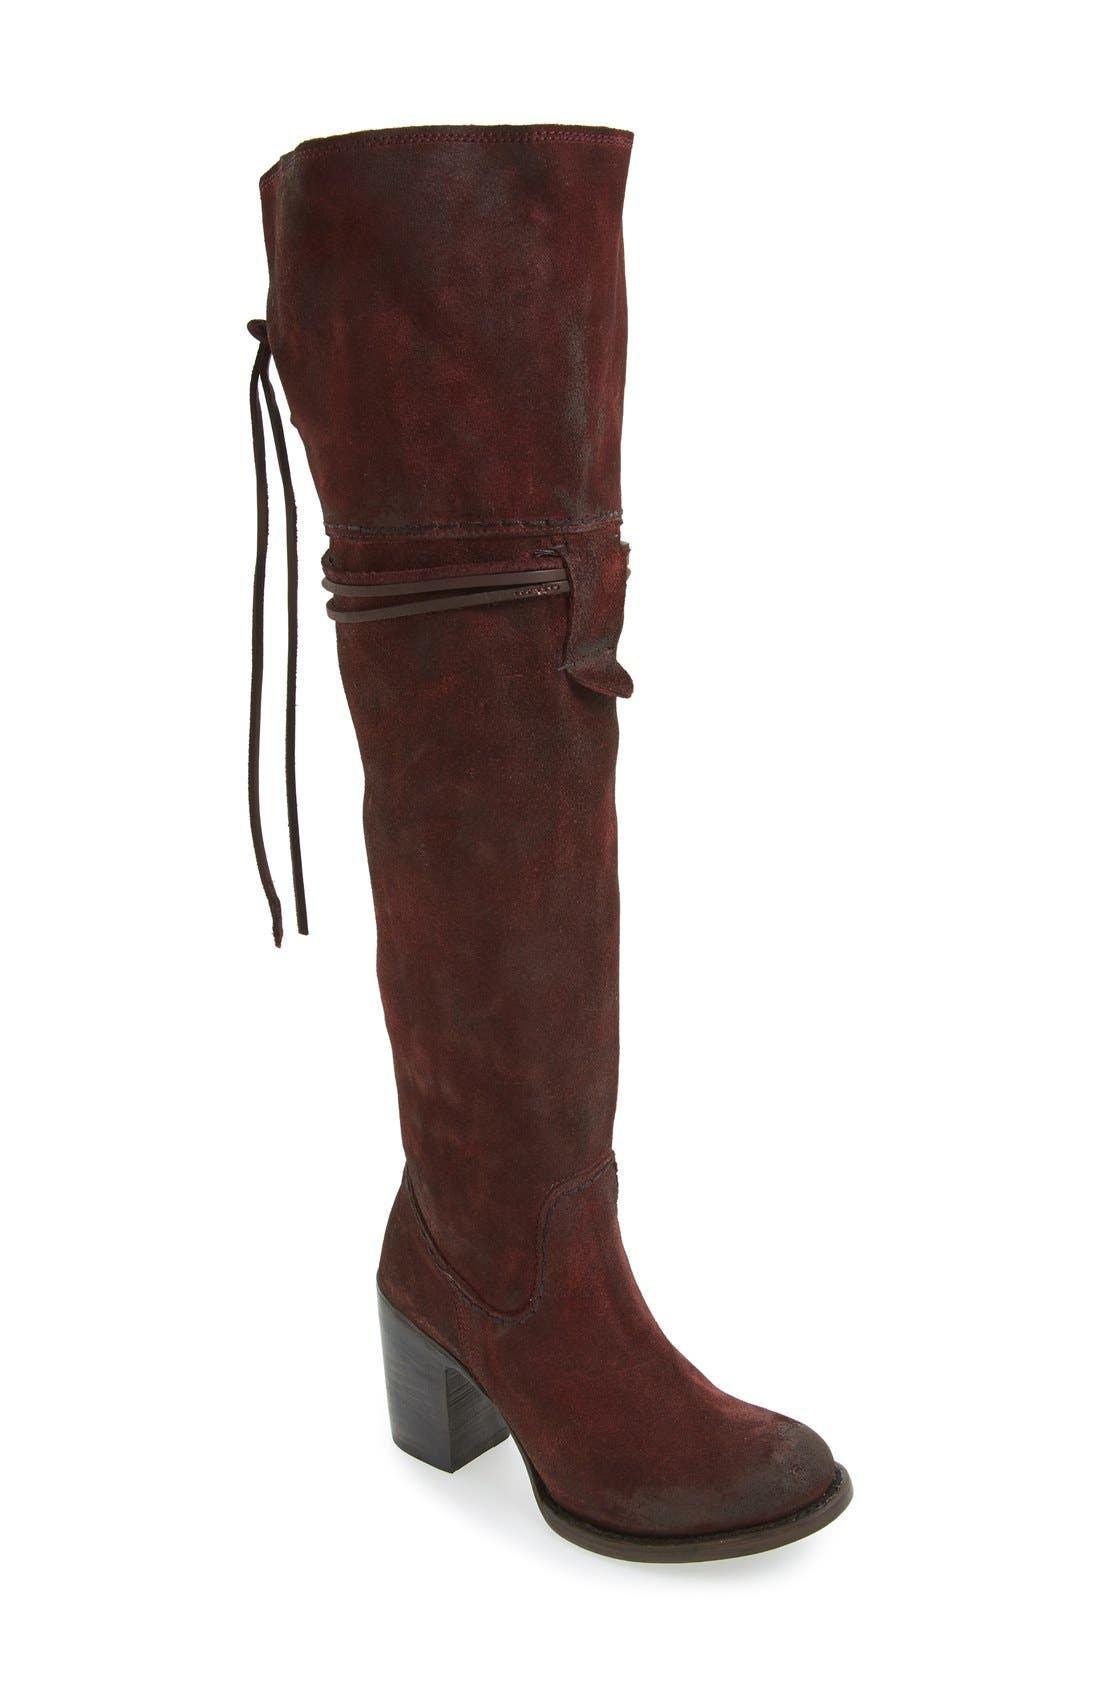 Main Image - Freebird by Steven Brock Over the Knee Boot (Women)